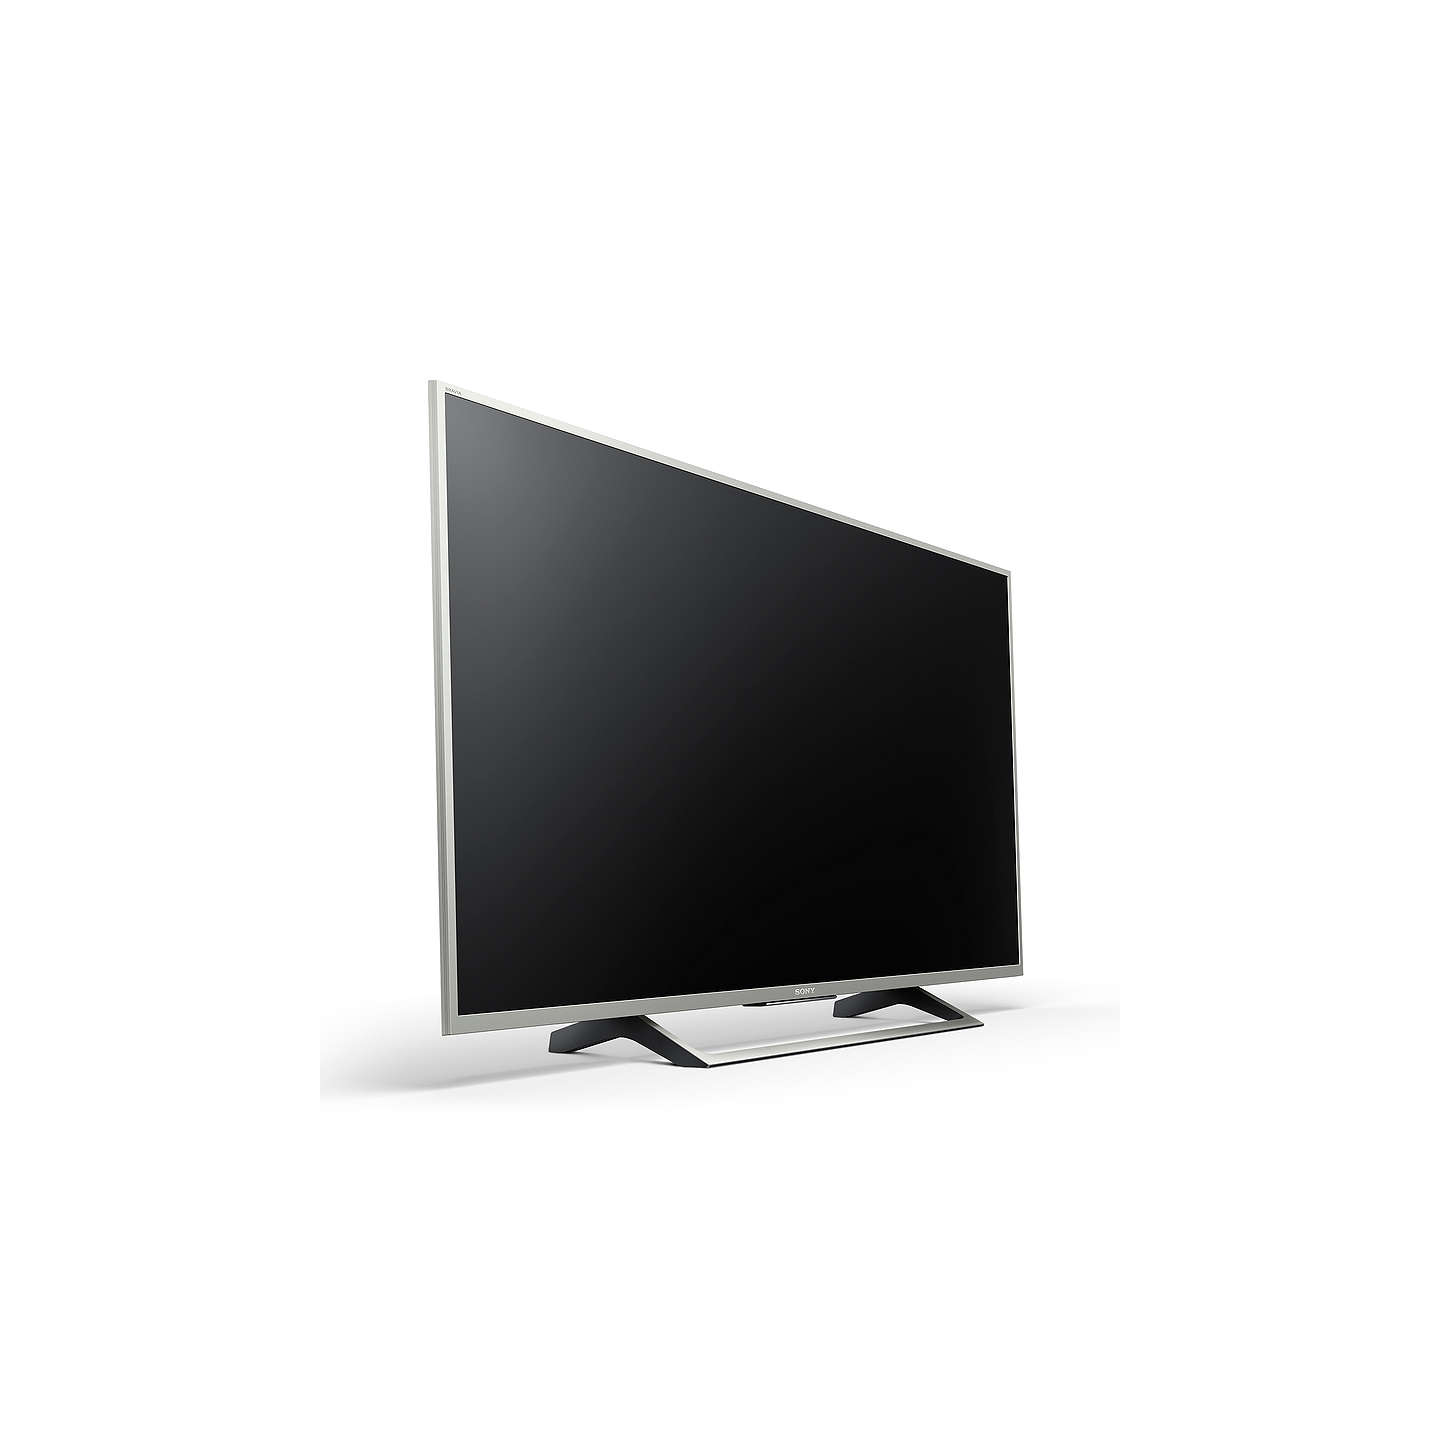 "BuySony Bravia KD49XE7073 LED HDR 4K Ultra HD Smart TV, 49"" with Freeview Play & Cable Management, Silver Online at johnlewis.com"